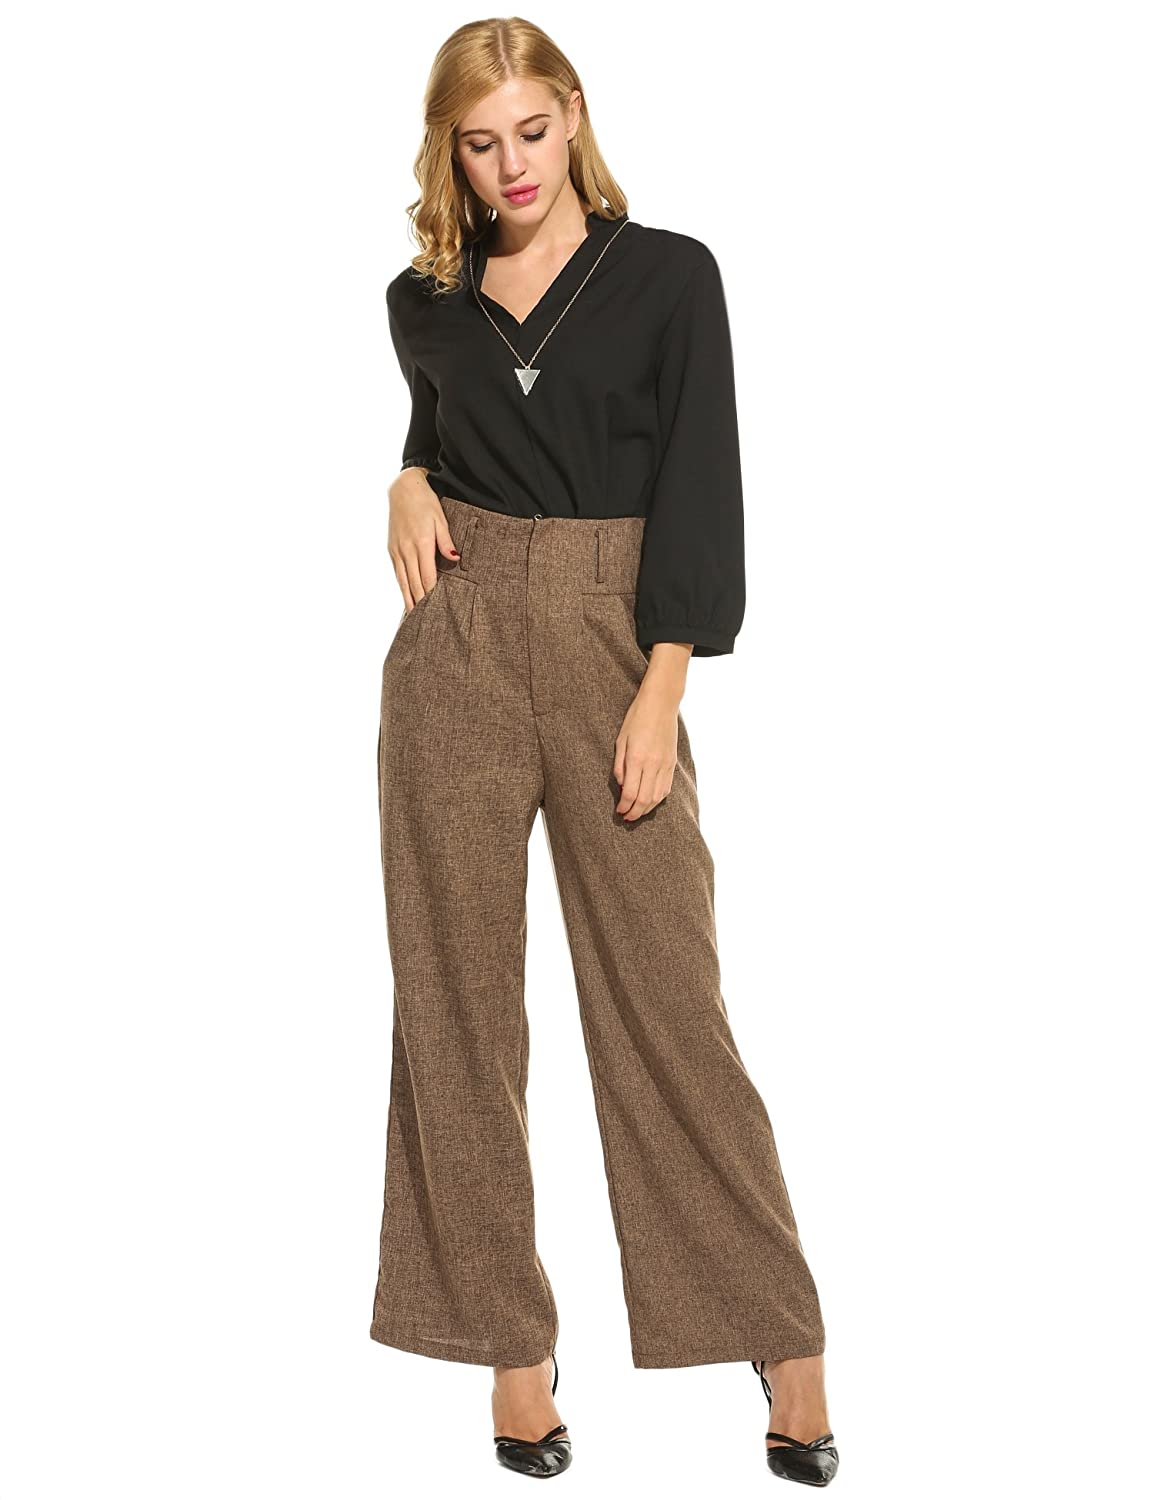 1920s Style Women's Pants, Trousers, Knickers, Tuxedo Zeagoo Women Casual Superline Wide Flare Leg High Waist Zipper Solid Long Pants $25.99 AT vintagedancer.com